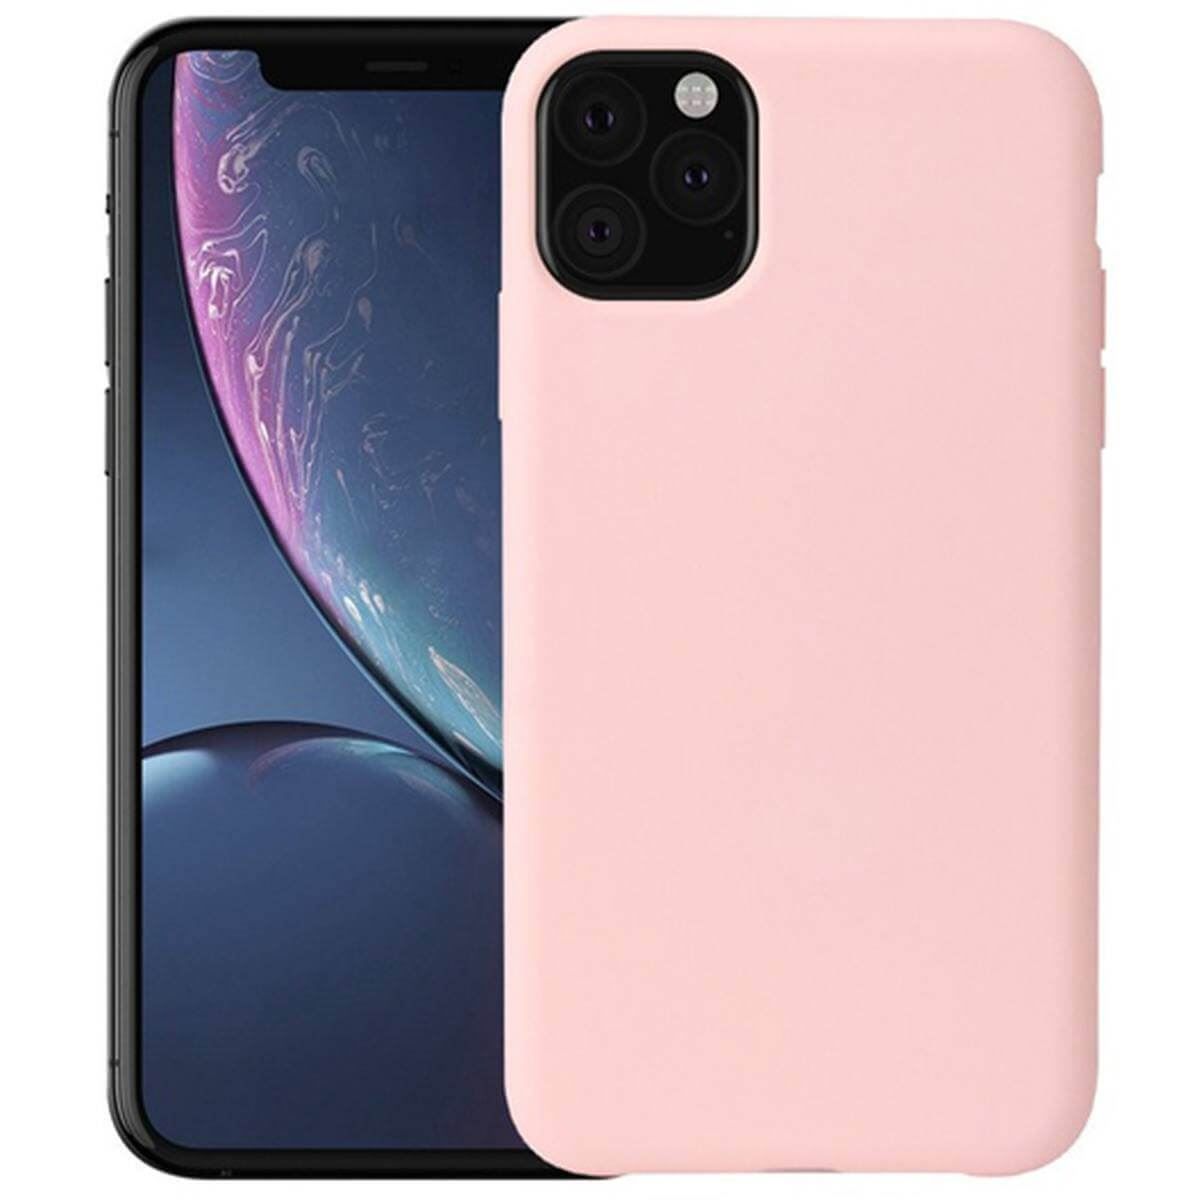 Liquid-Silicone-Shockproof-Case-For-Apple-iPhone-Soft-Matte-Back-Phone-Cover thumbnail 19